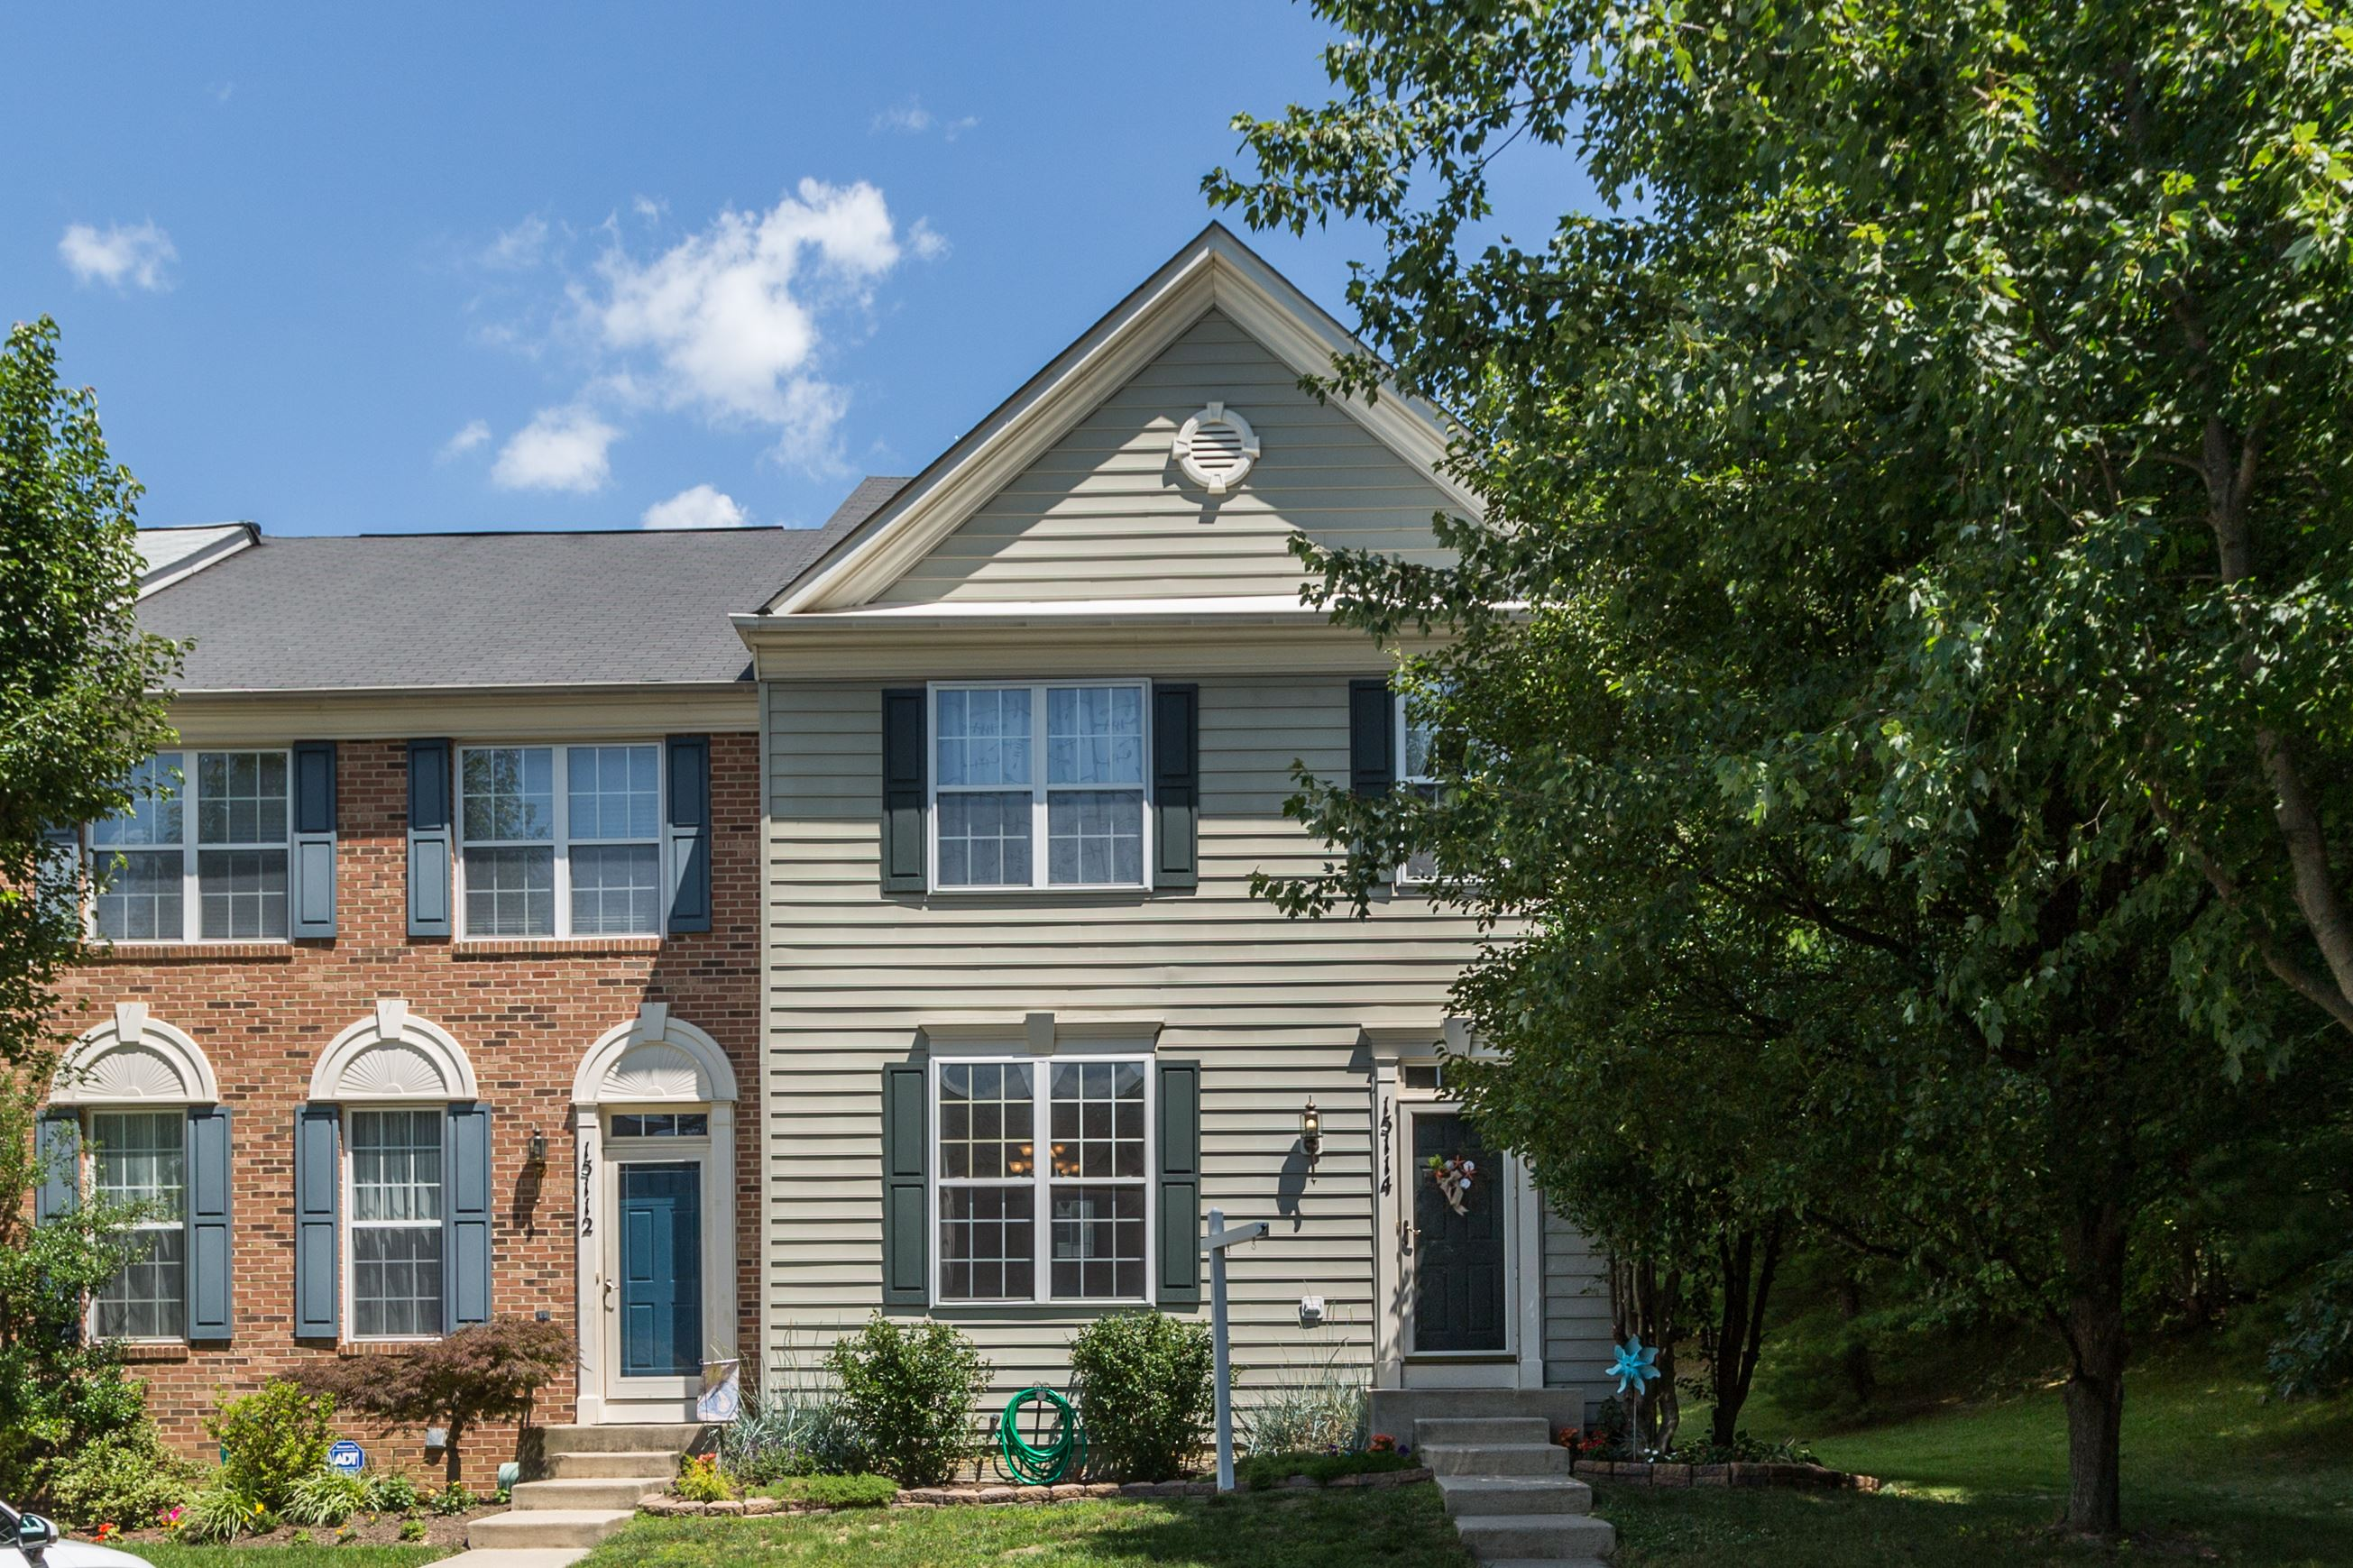 NEW LISTING: Beautifully Maintained End Unit in Longmeade